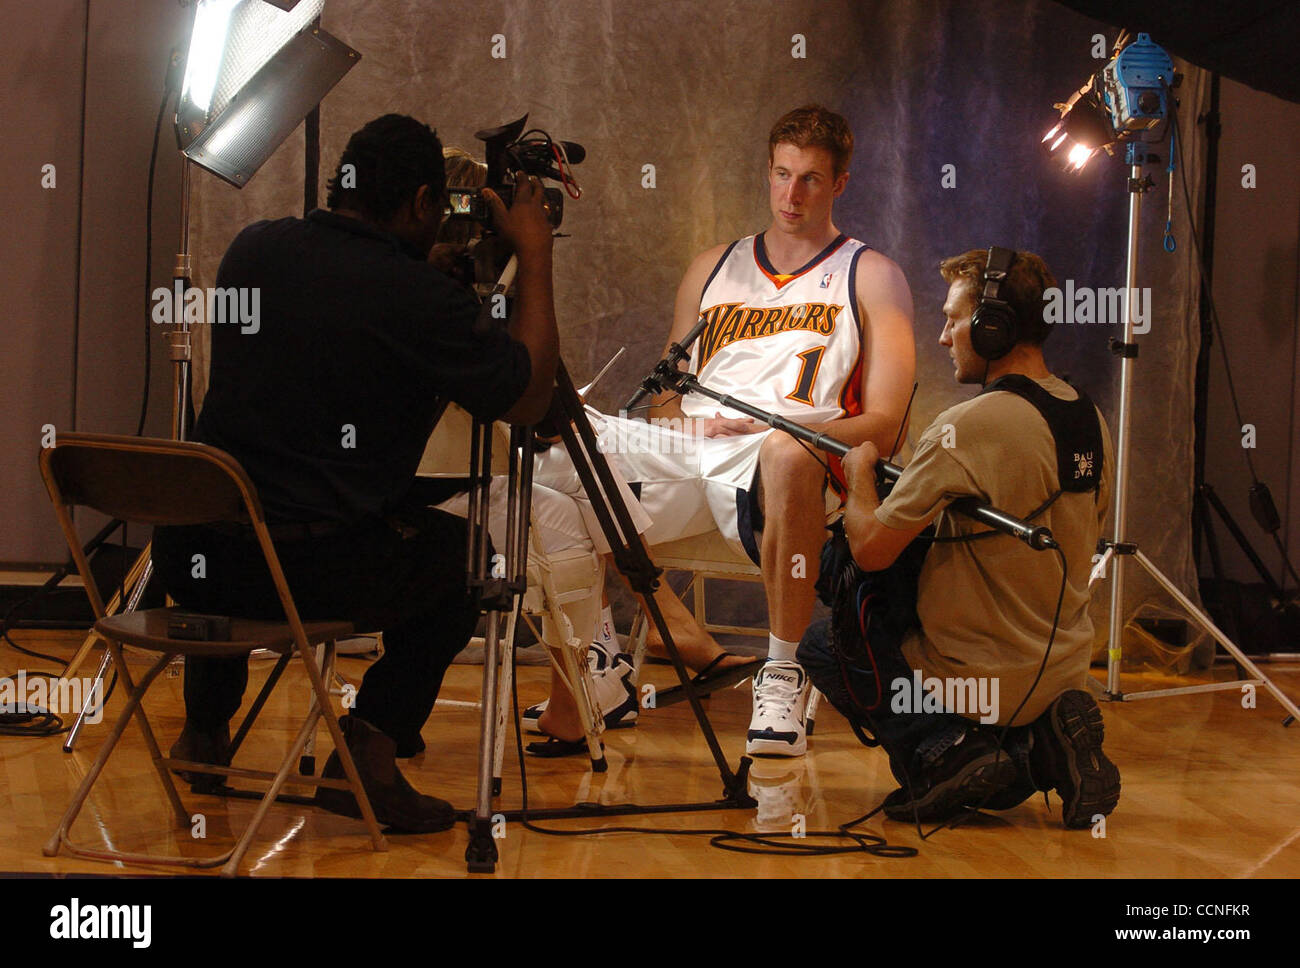 Golden State Warriors Troy Murphy 1 s interviewed during